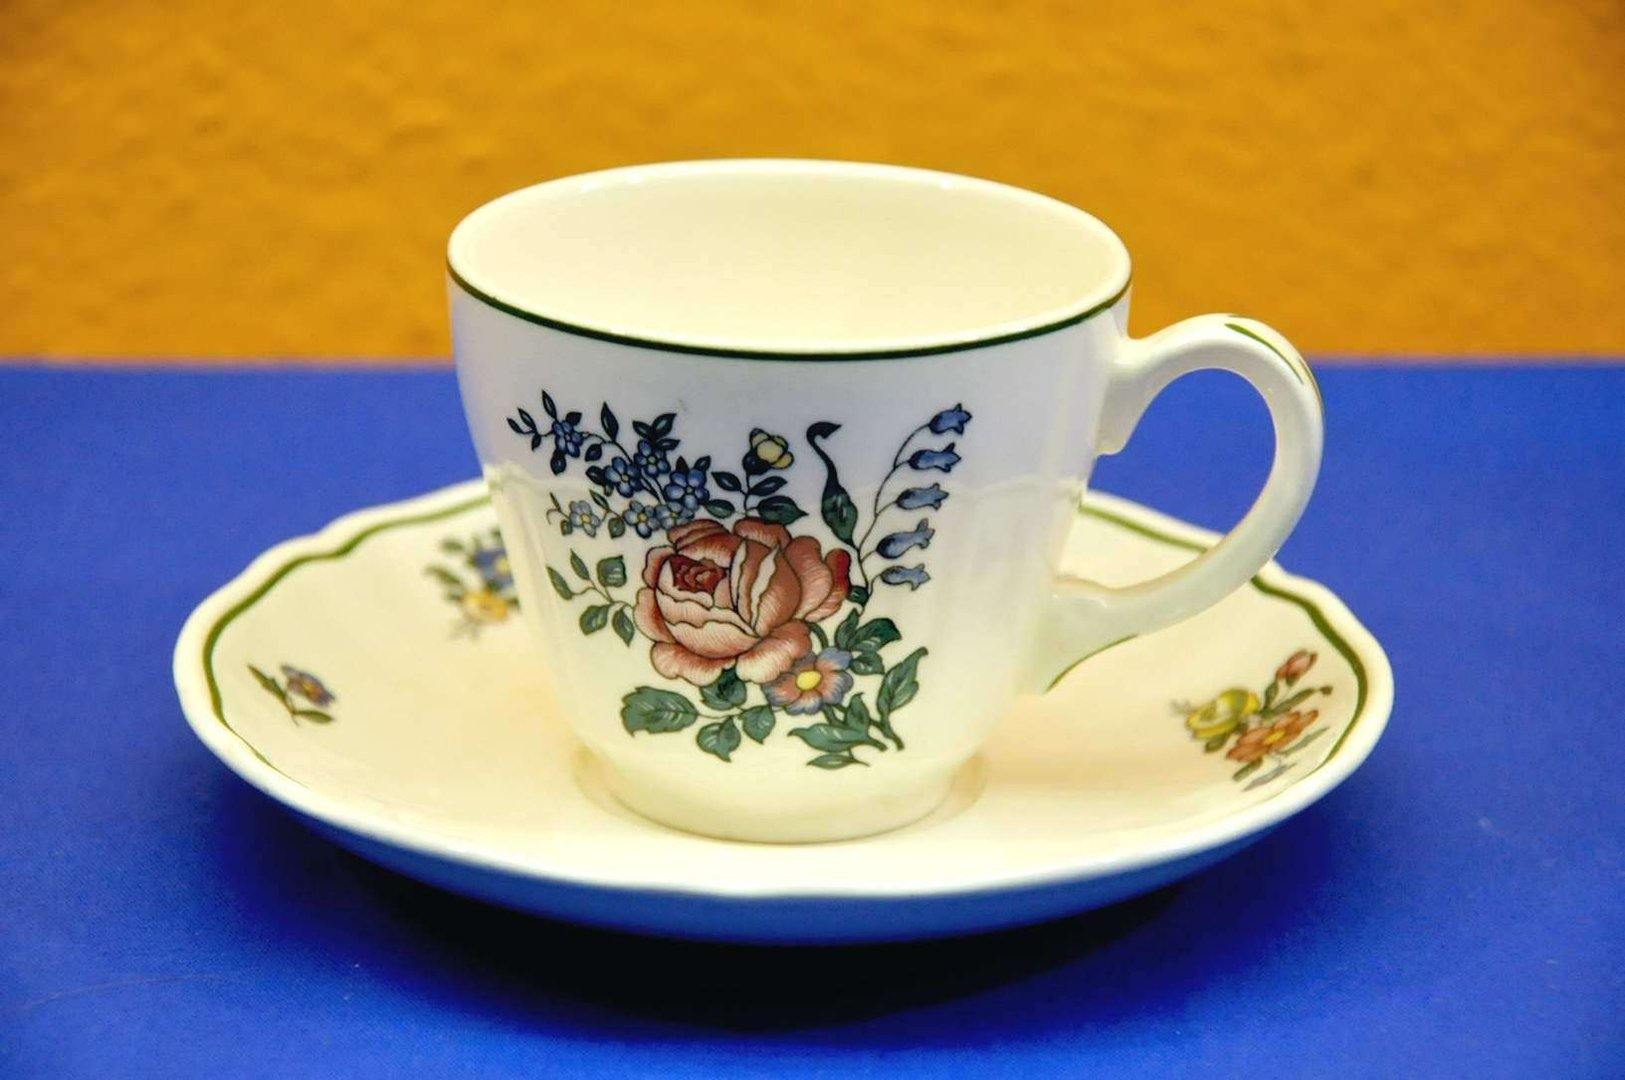 Coffee Boch Strasbourg Old Cup Rose Villeroyamp; QrxsdCth